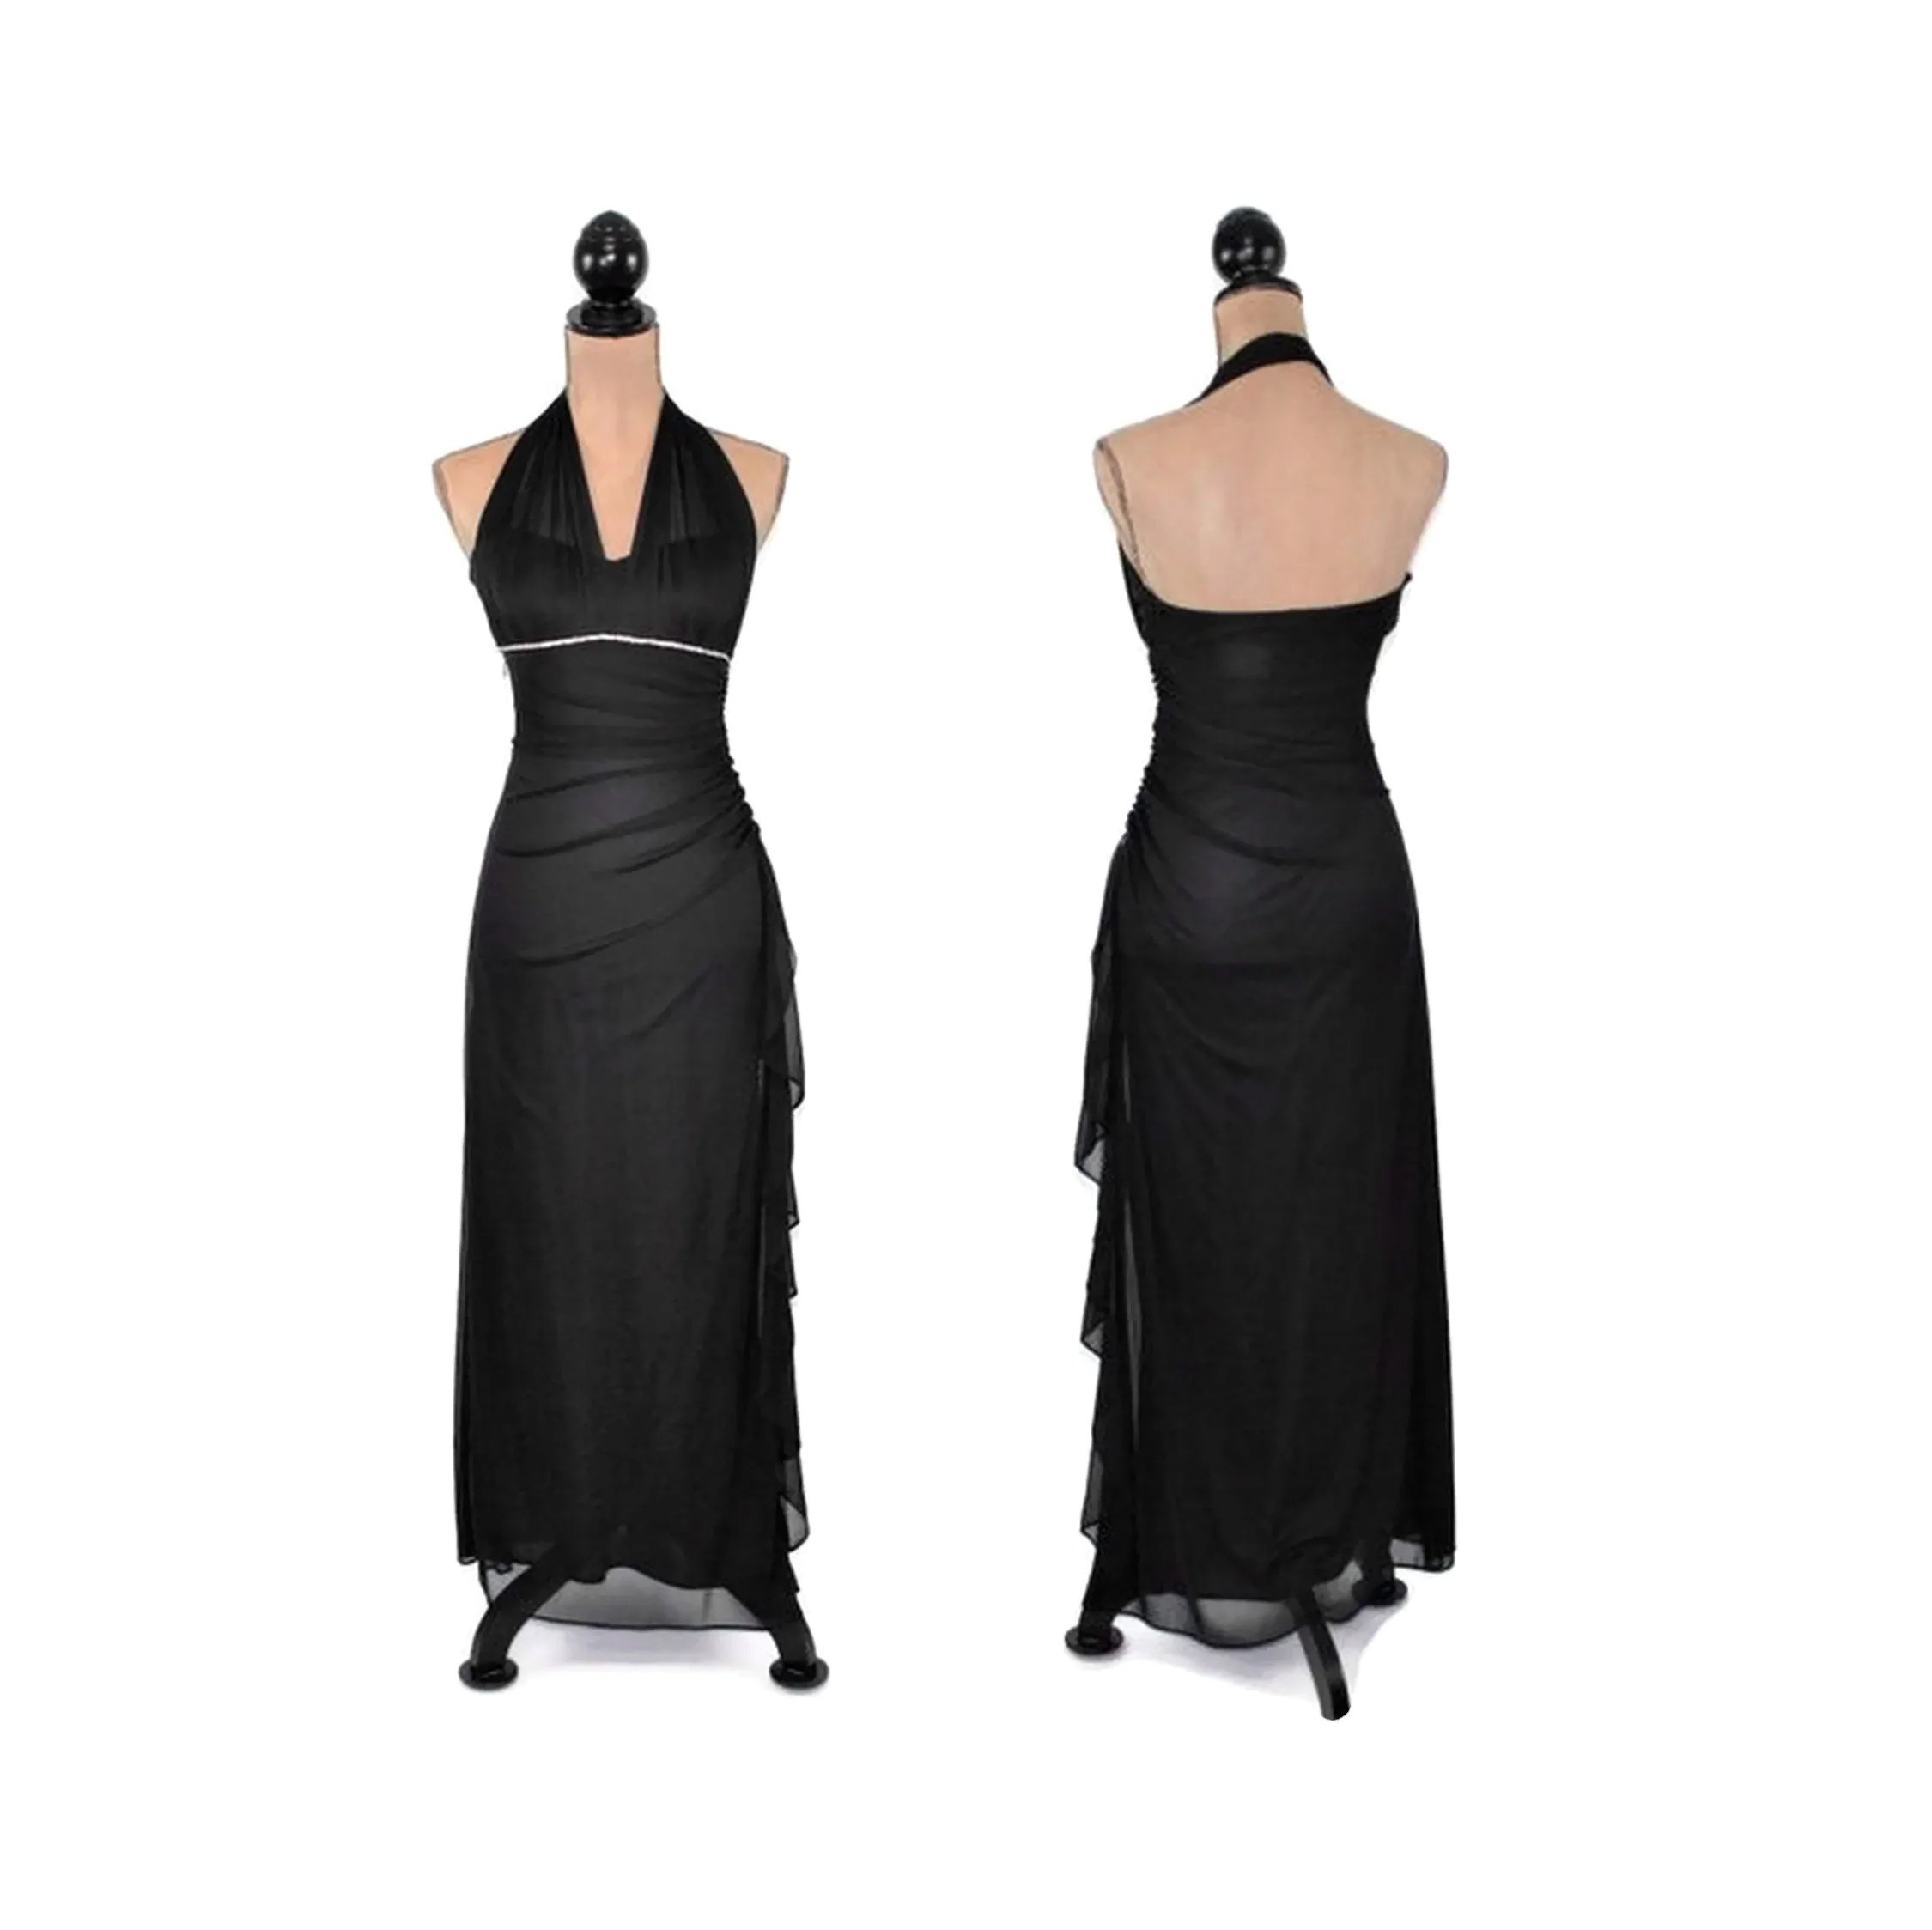 Xs Long Sexy Formal Dress Women Xs Long Black Chiffon Halter Dress Evening Cocktail Party Prom Rhinestones V Neck Ruched Fitted Vintage Clothing